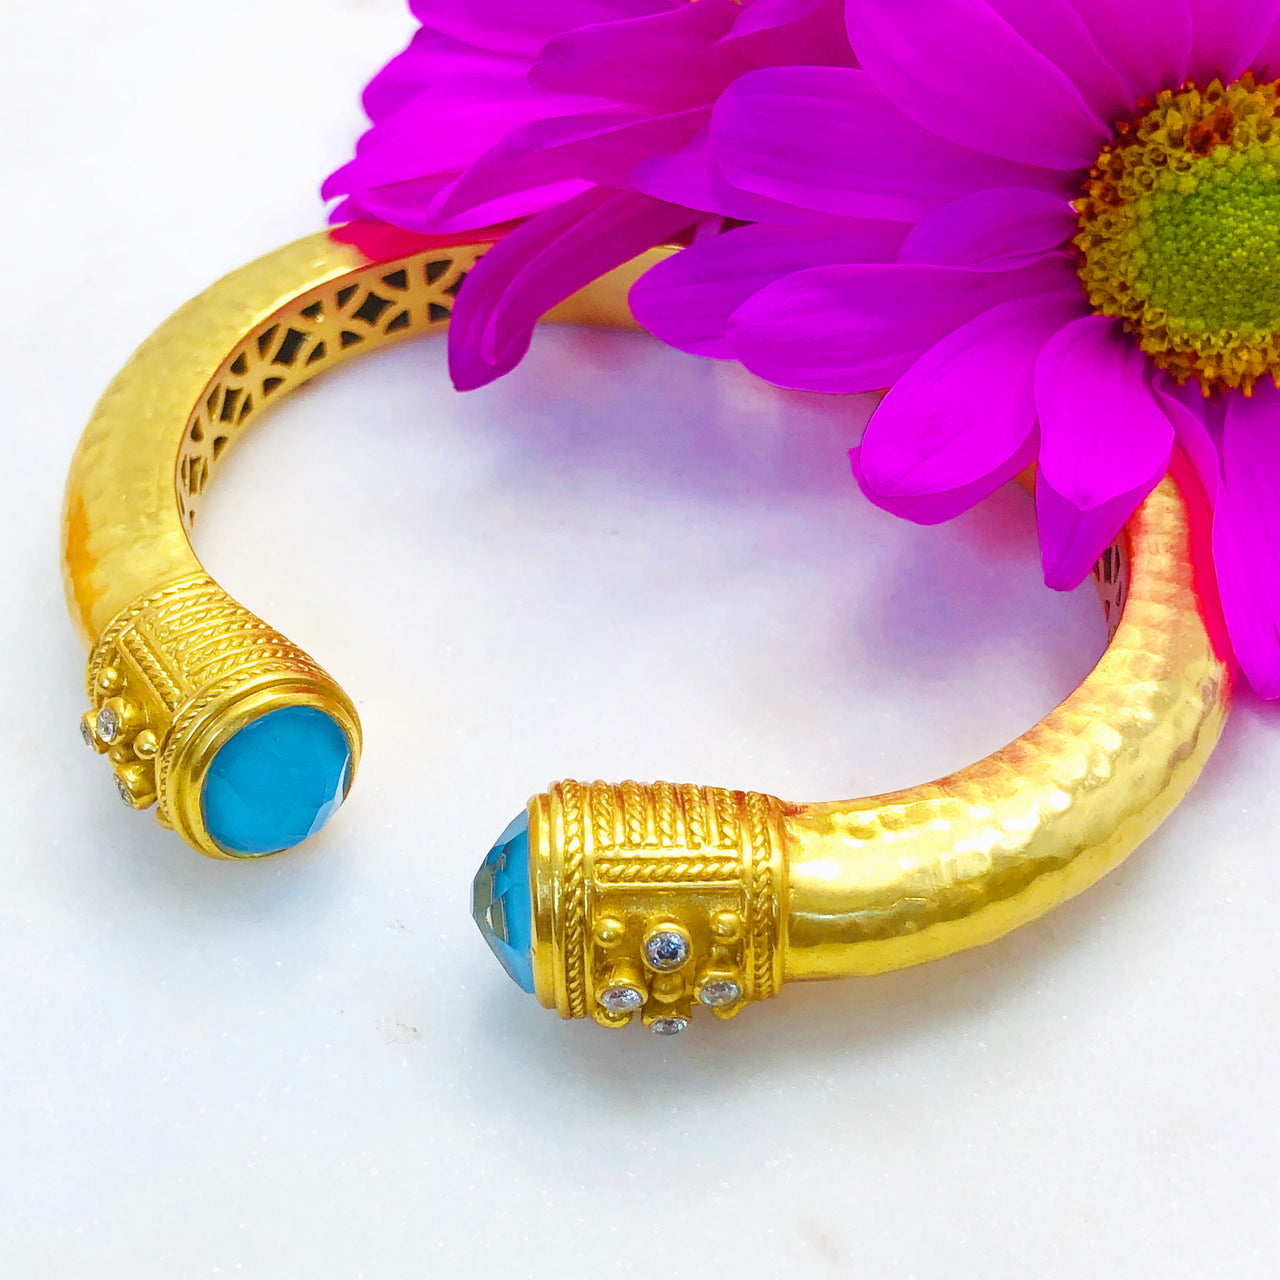 Gold Plated Turquoise, Quartz and Cubic Zirconia Bracelet.